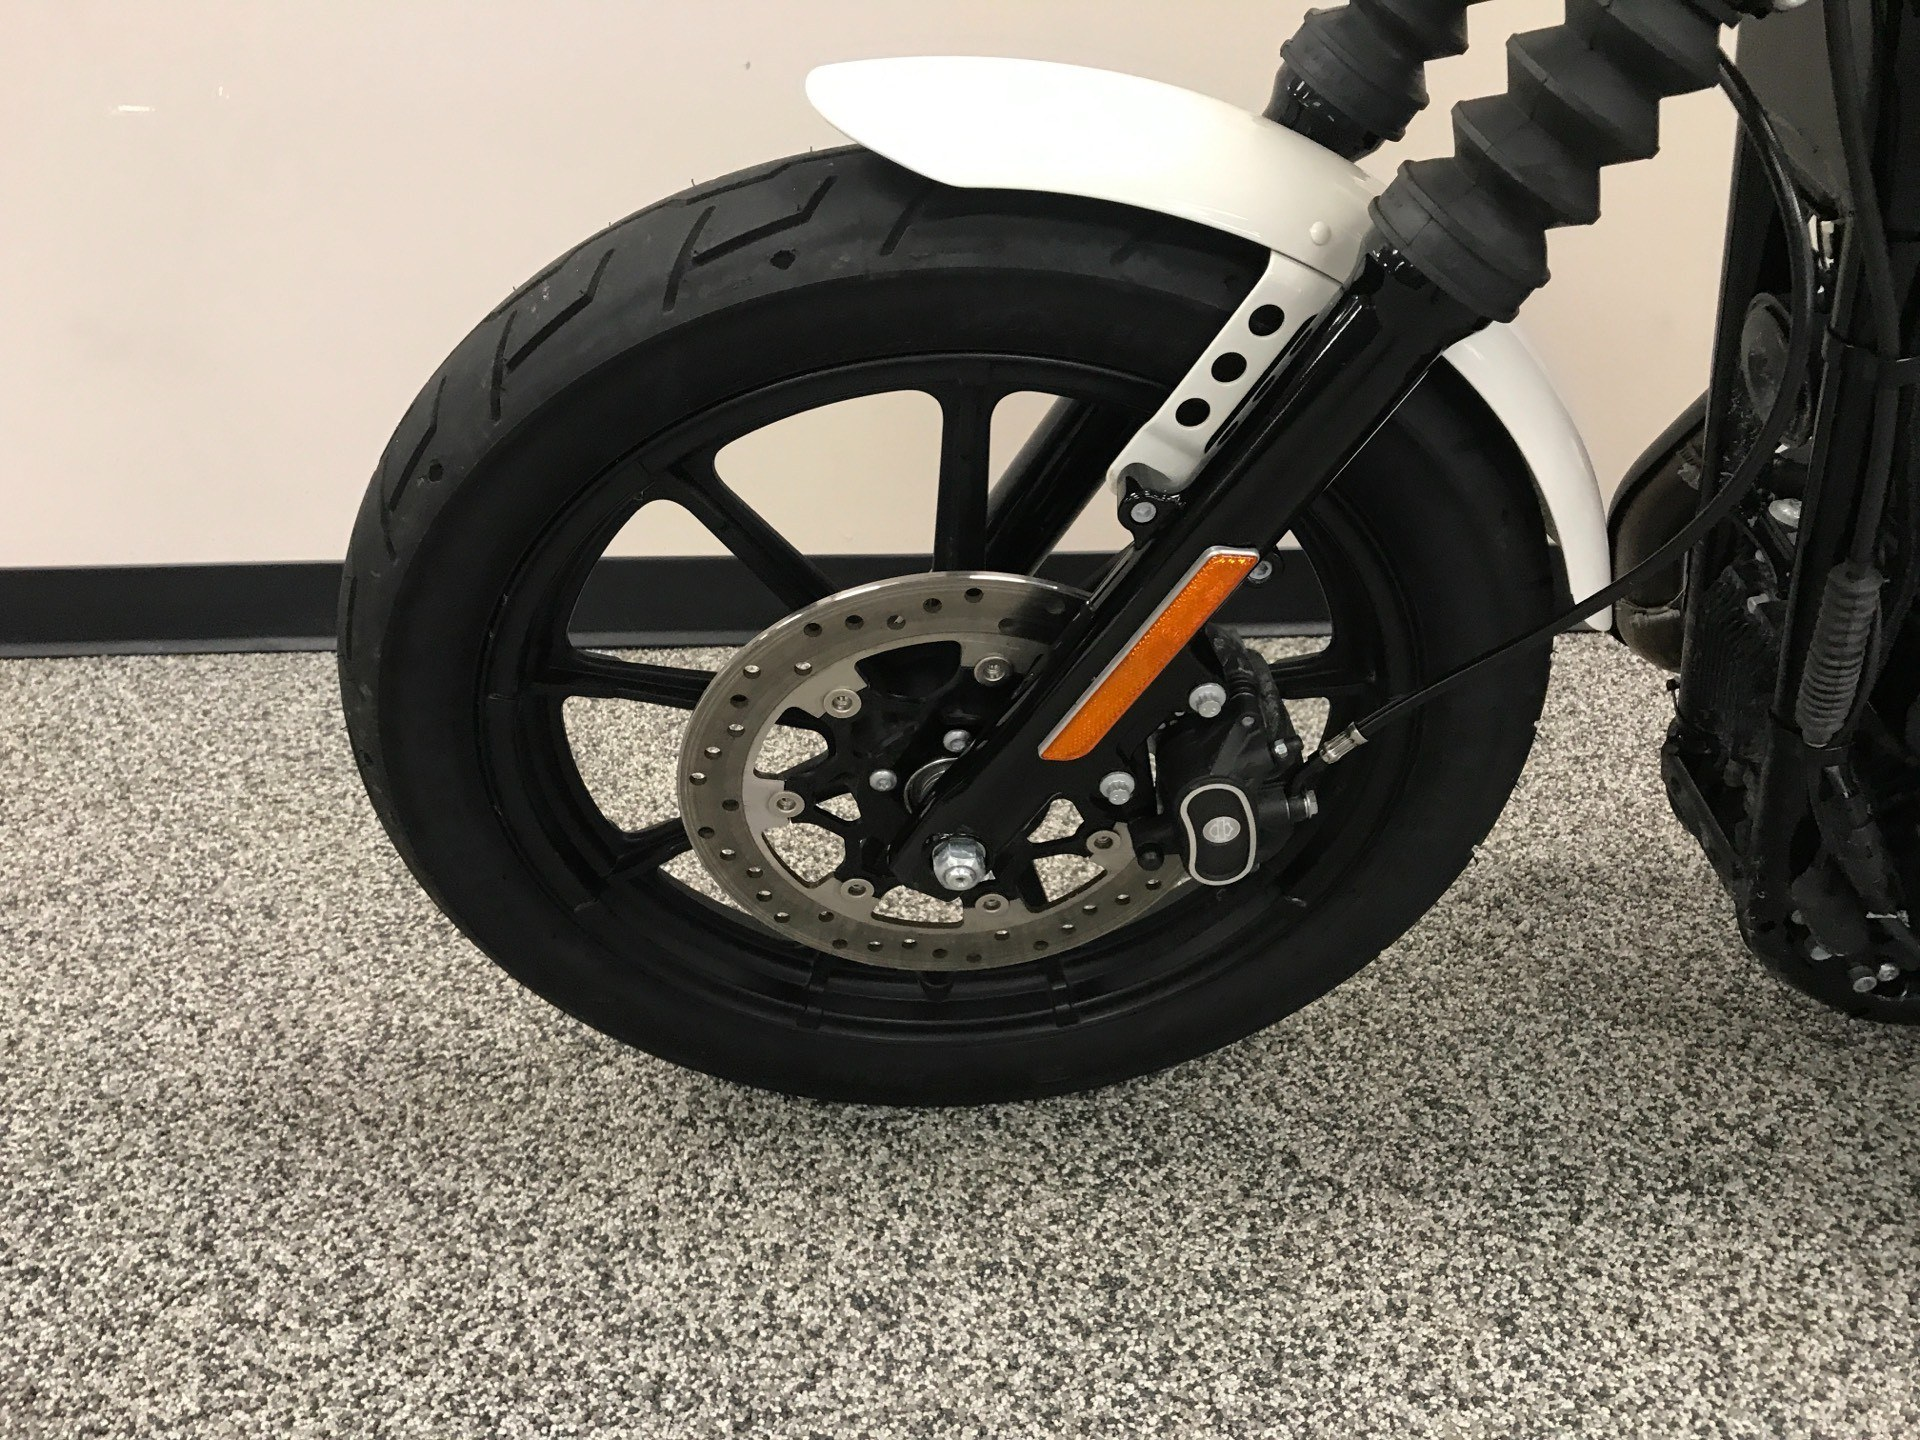 2018 Harley-Davidson XL1200N in Knoxville, Tennessee - Photo 16